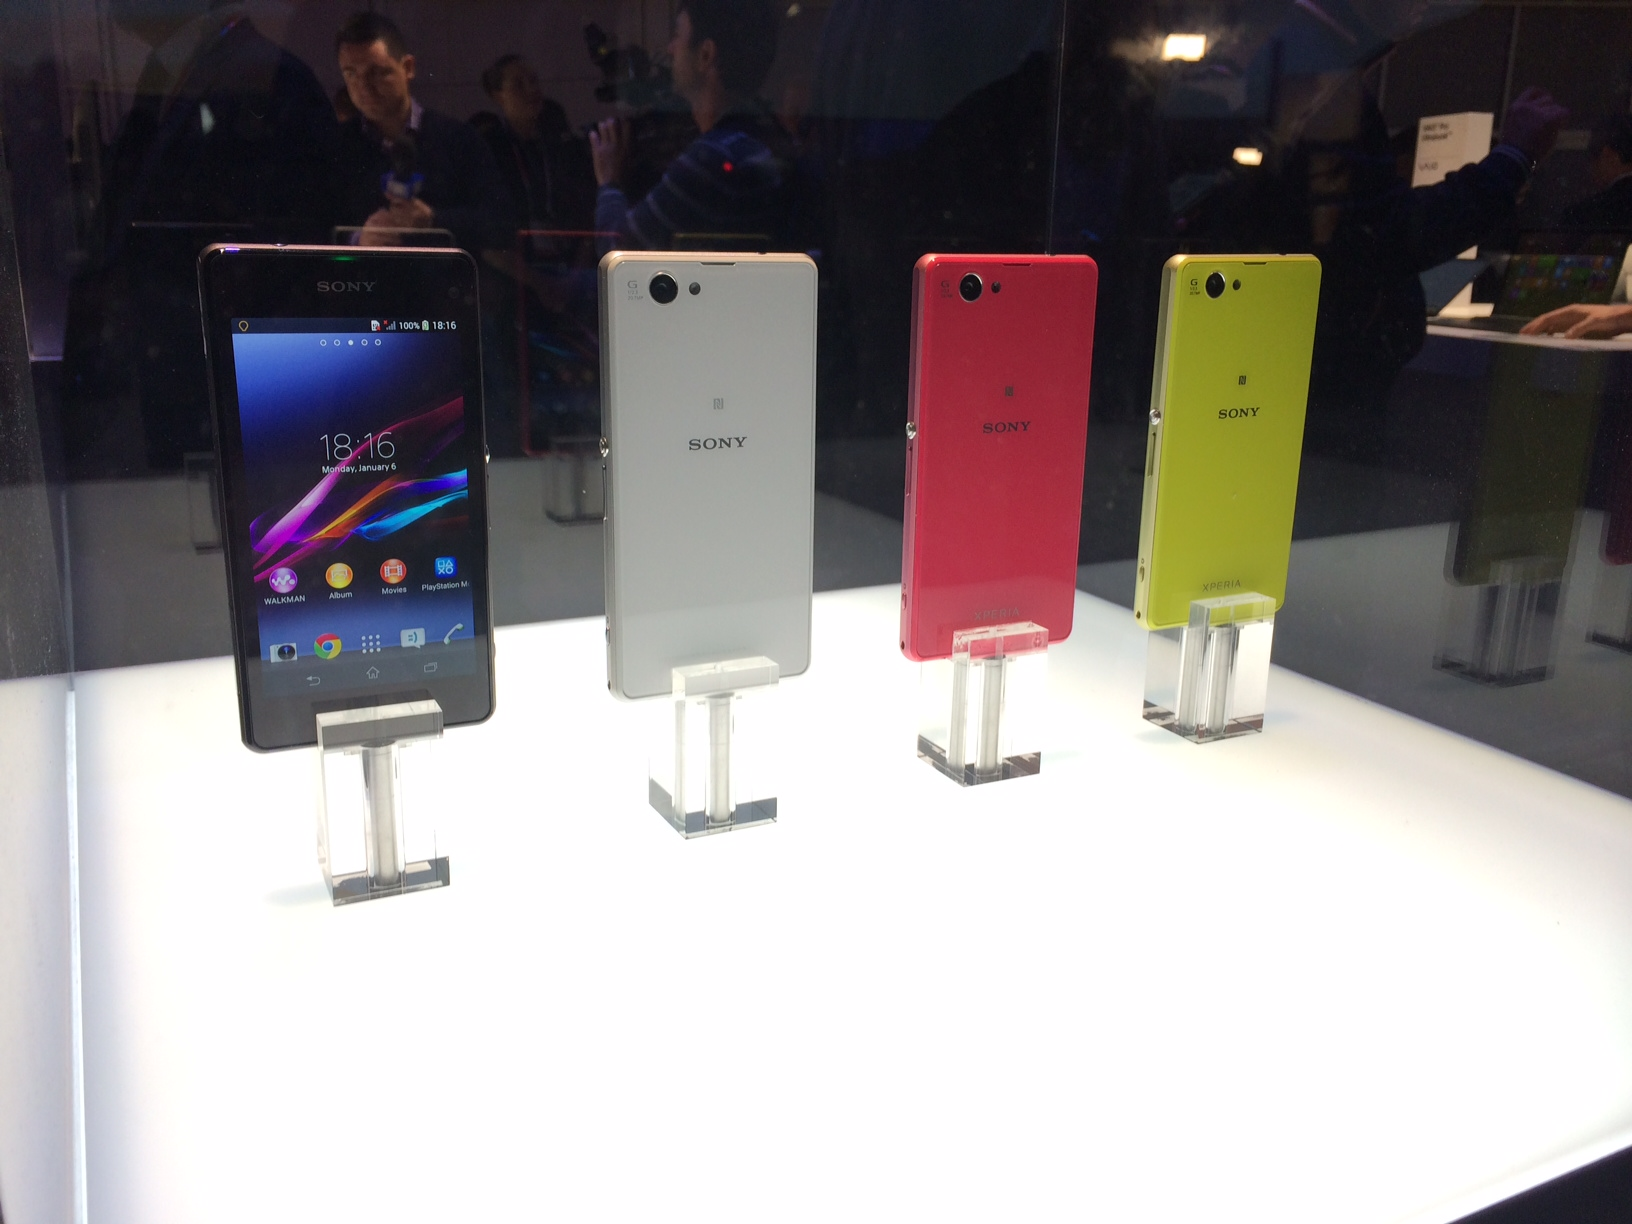 Sony unveils its Xperia Z1 Compact and Z1S Android smartphones